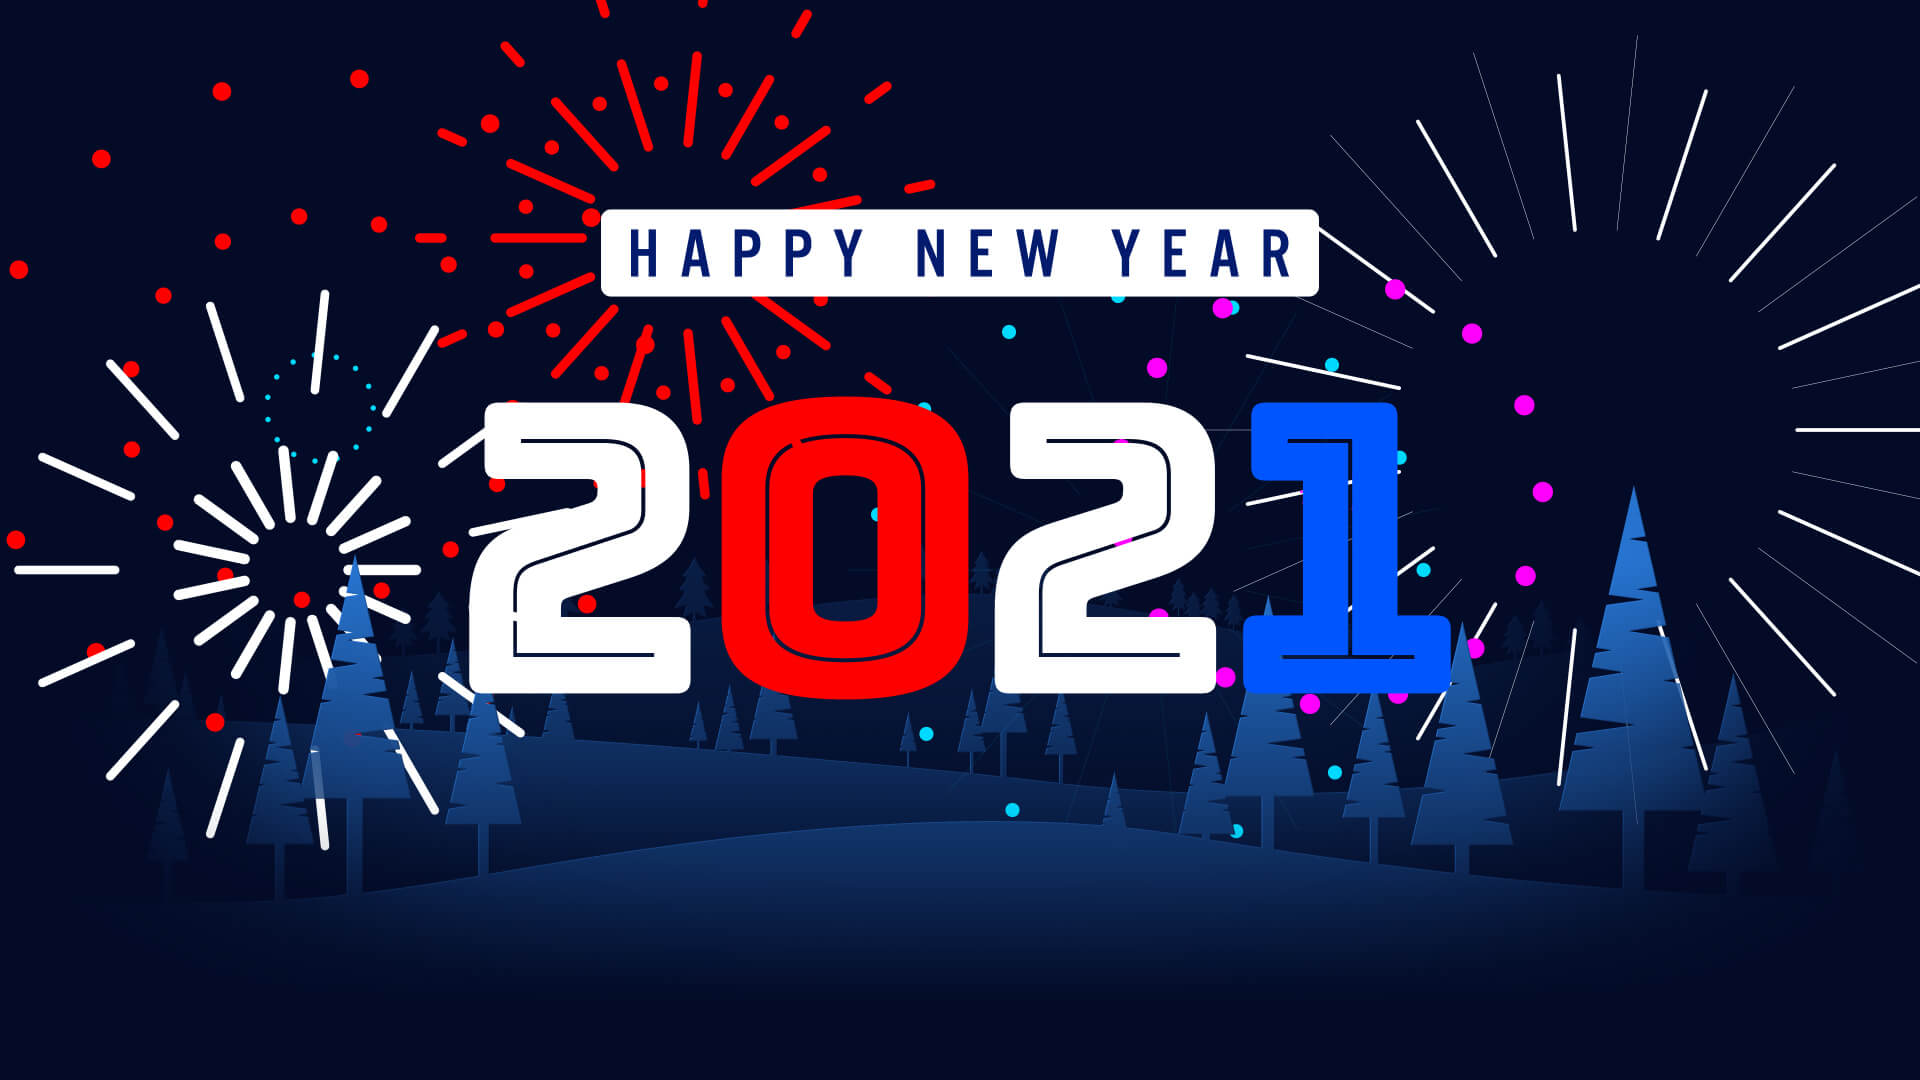 Happy New Year 2021 Fireworks Animation Video Still